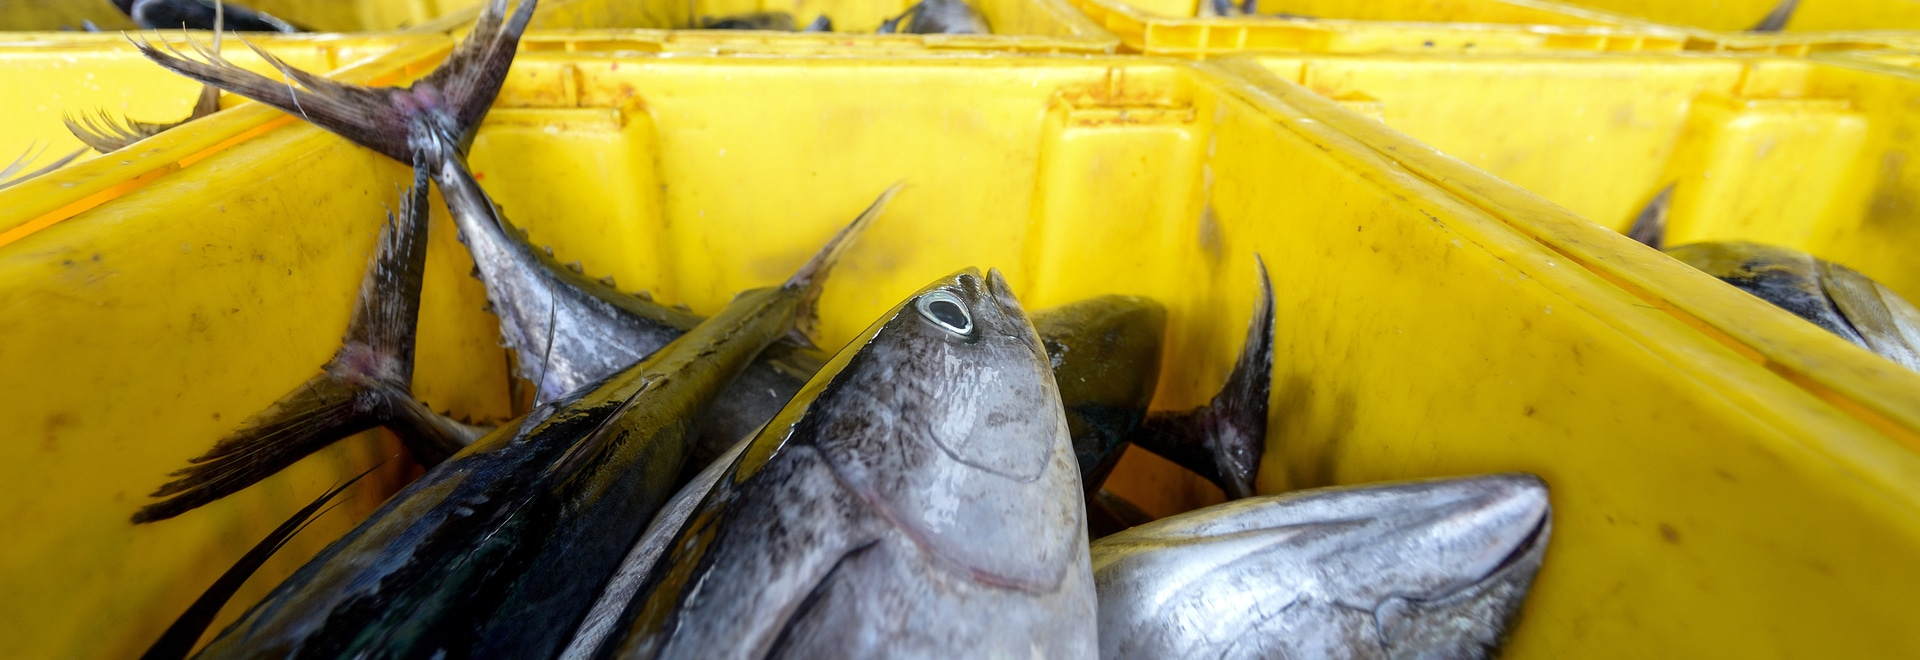 Clean energy in aquaculture: using technology to grow healthy fish